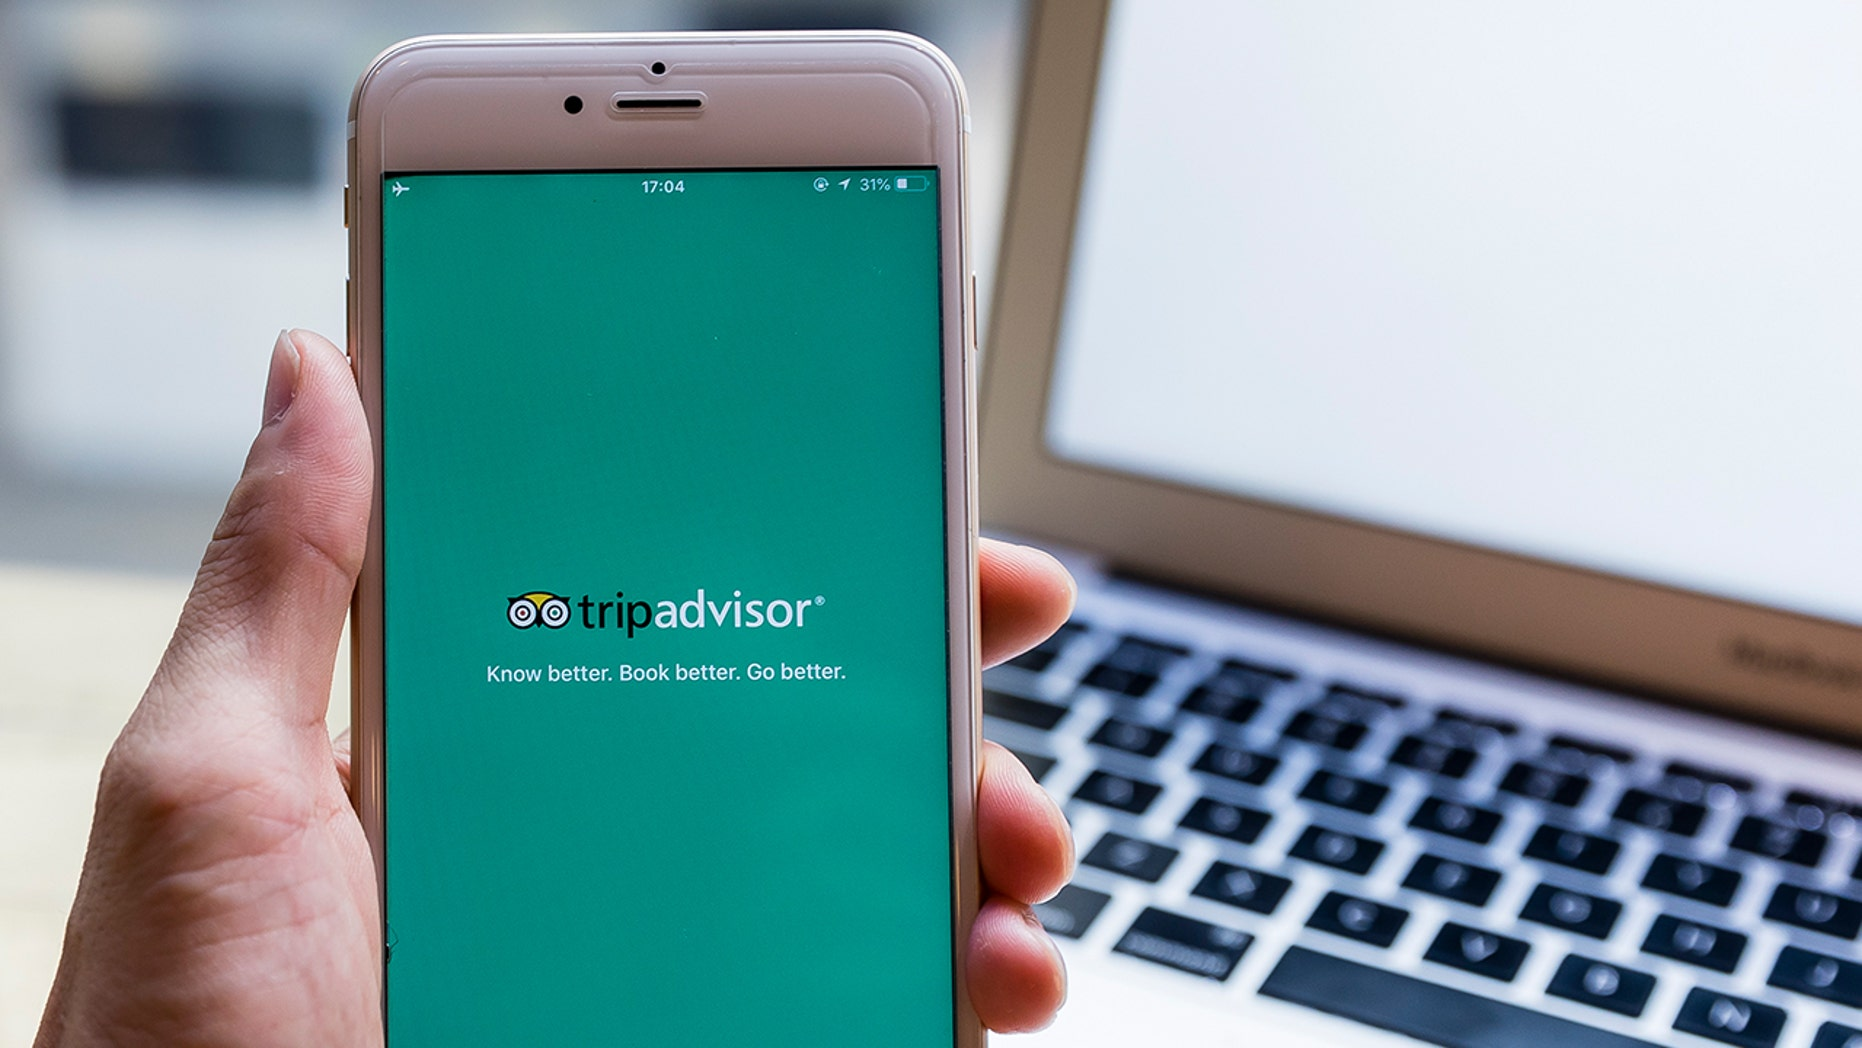 A man in Italy was sentenced to nine months in jail for selling fake reviews on TripAdvisor.